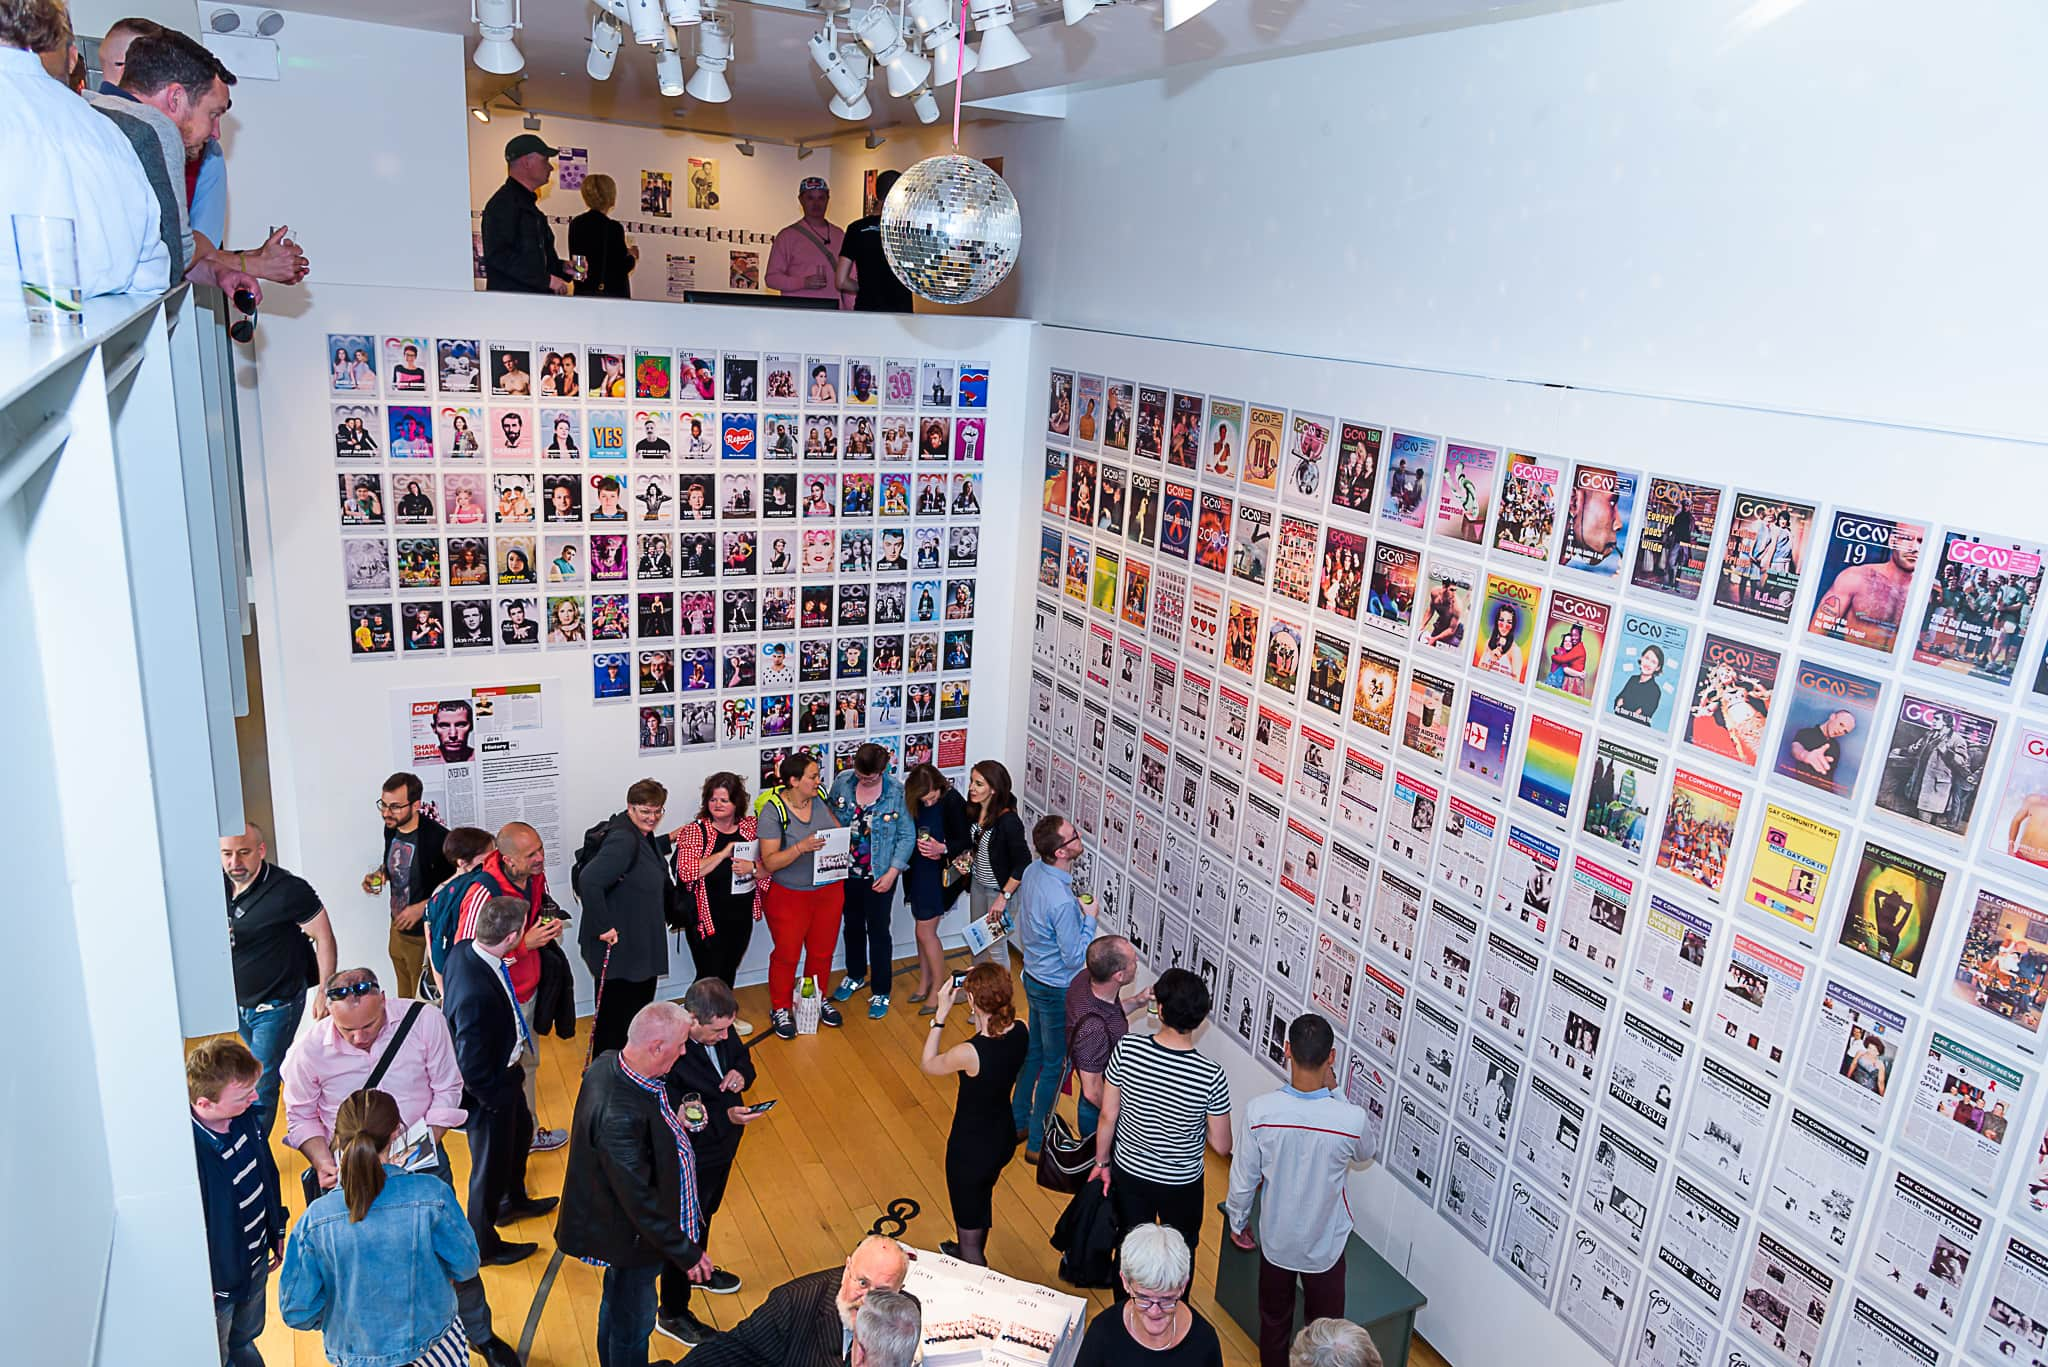 A photo of a crowd of people looking at walls covered in GCN magazine covers at the Proof exhibition, which shares some of the source material with GCN's Prism.